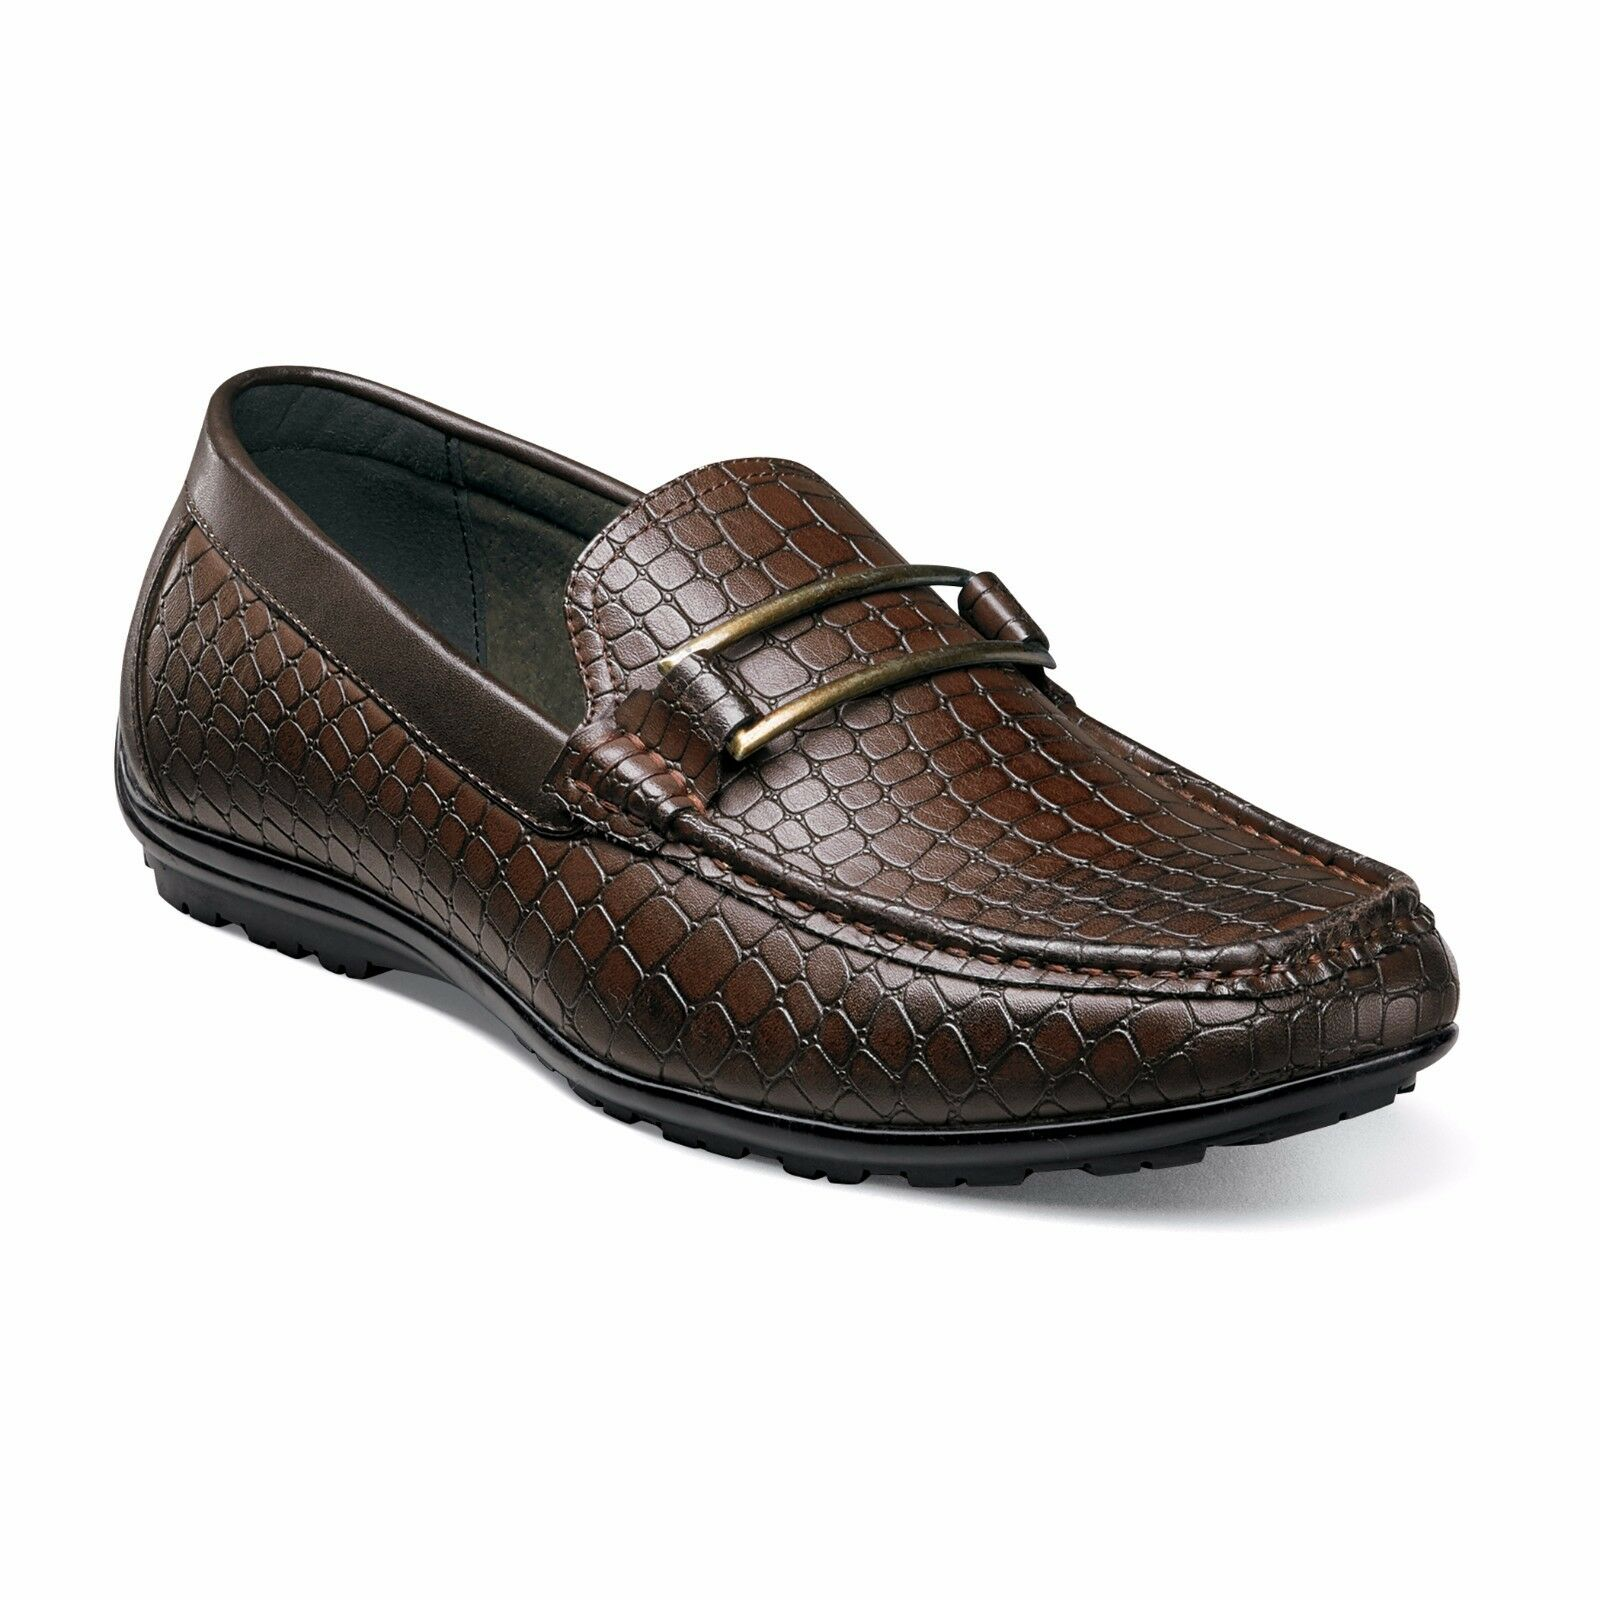 Stacy Adams Men's LANZO Moc toe slip-on Brown Shoes 25057-200